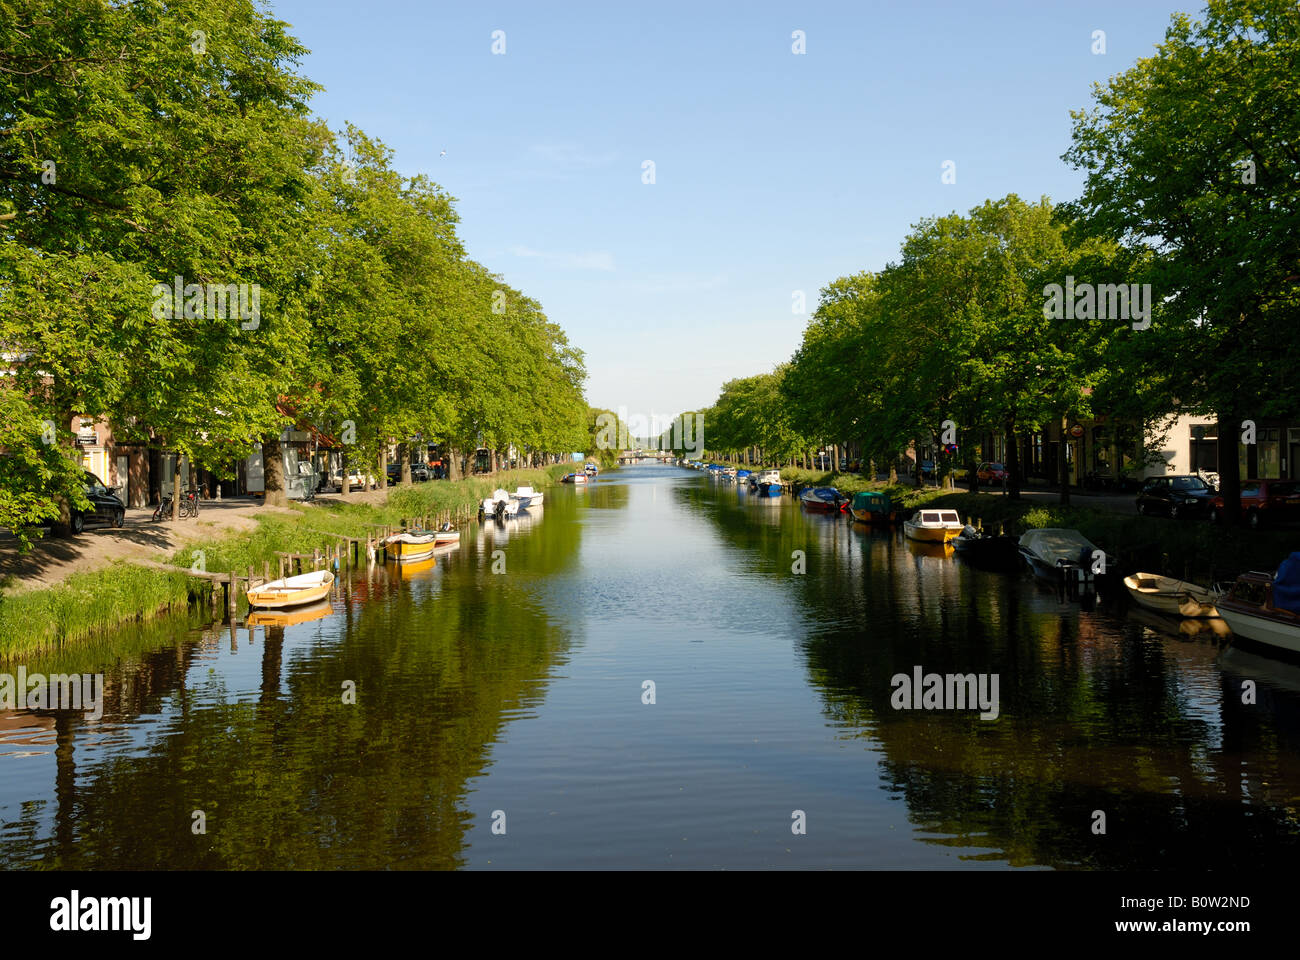 Channel with boats in Den Helder, the Netherlands - Stock Image